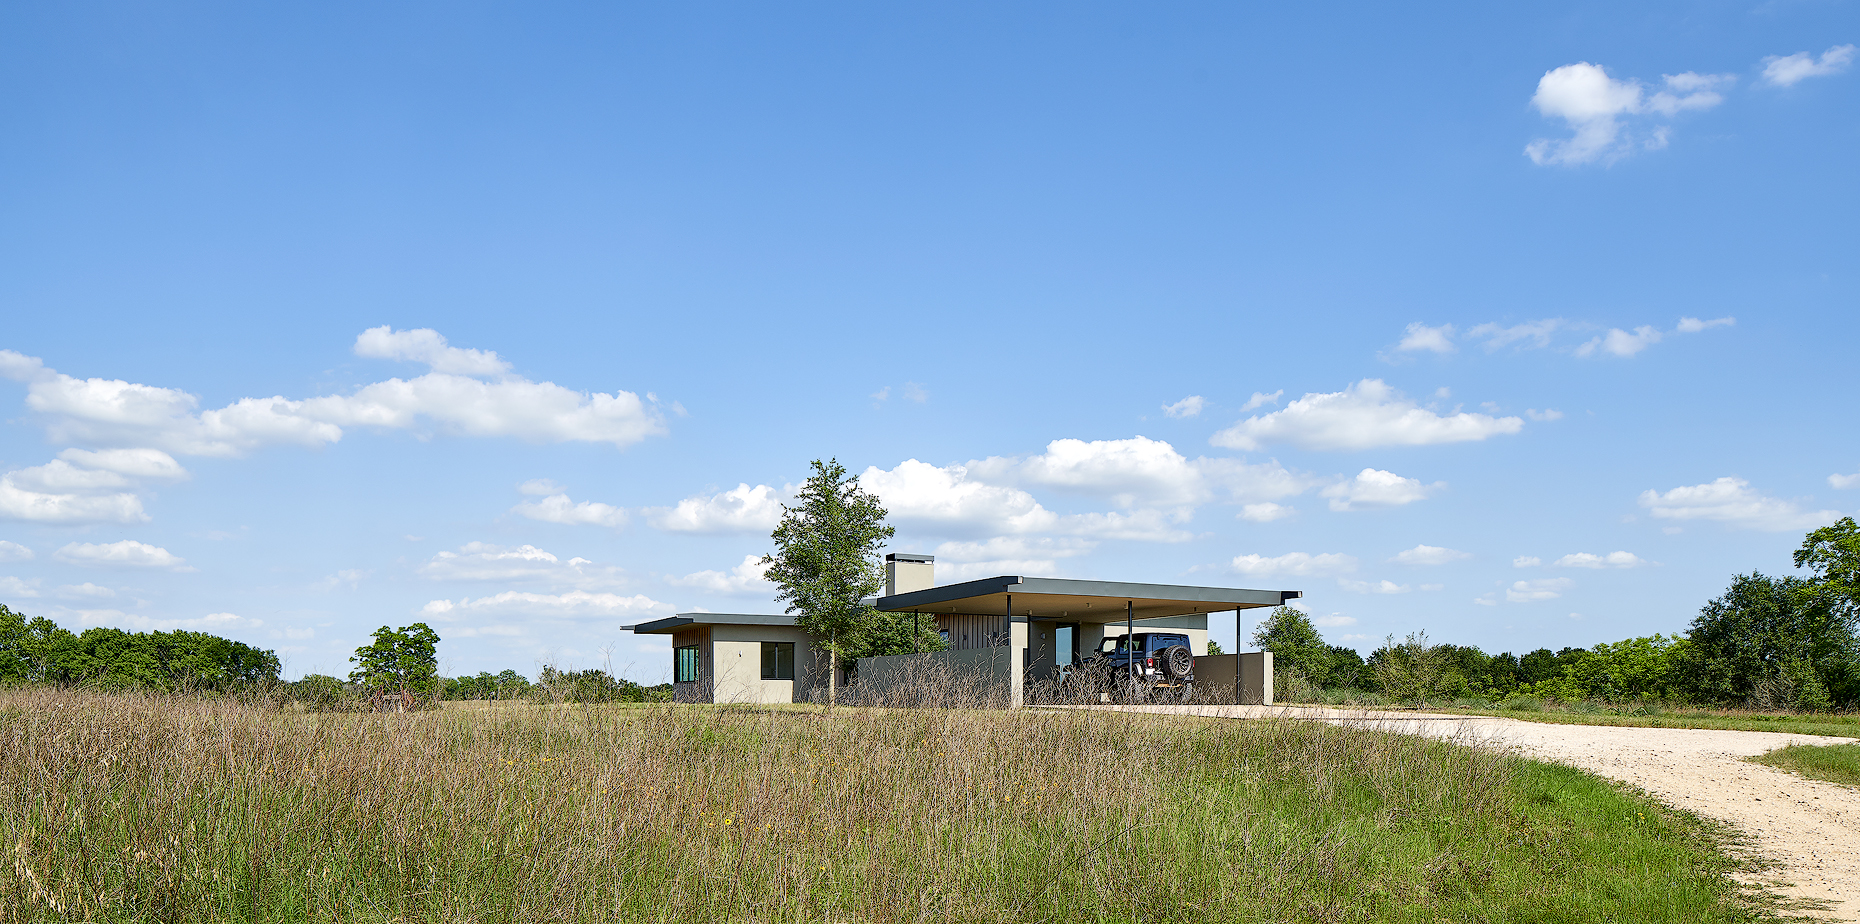 Ranch house Bellville texas Dror Baldinger FAIA photography